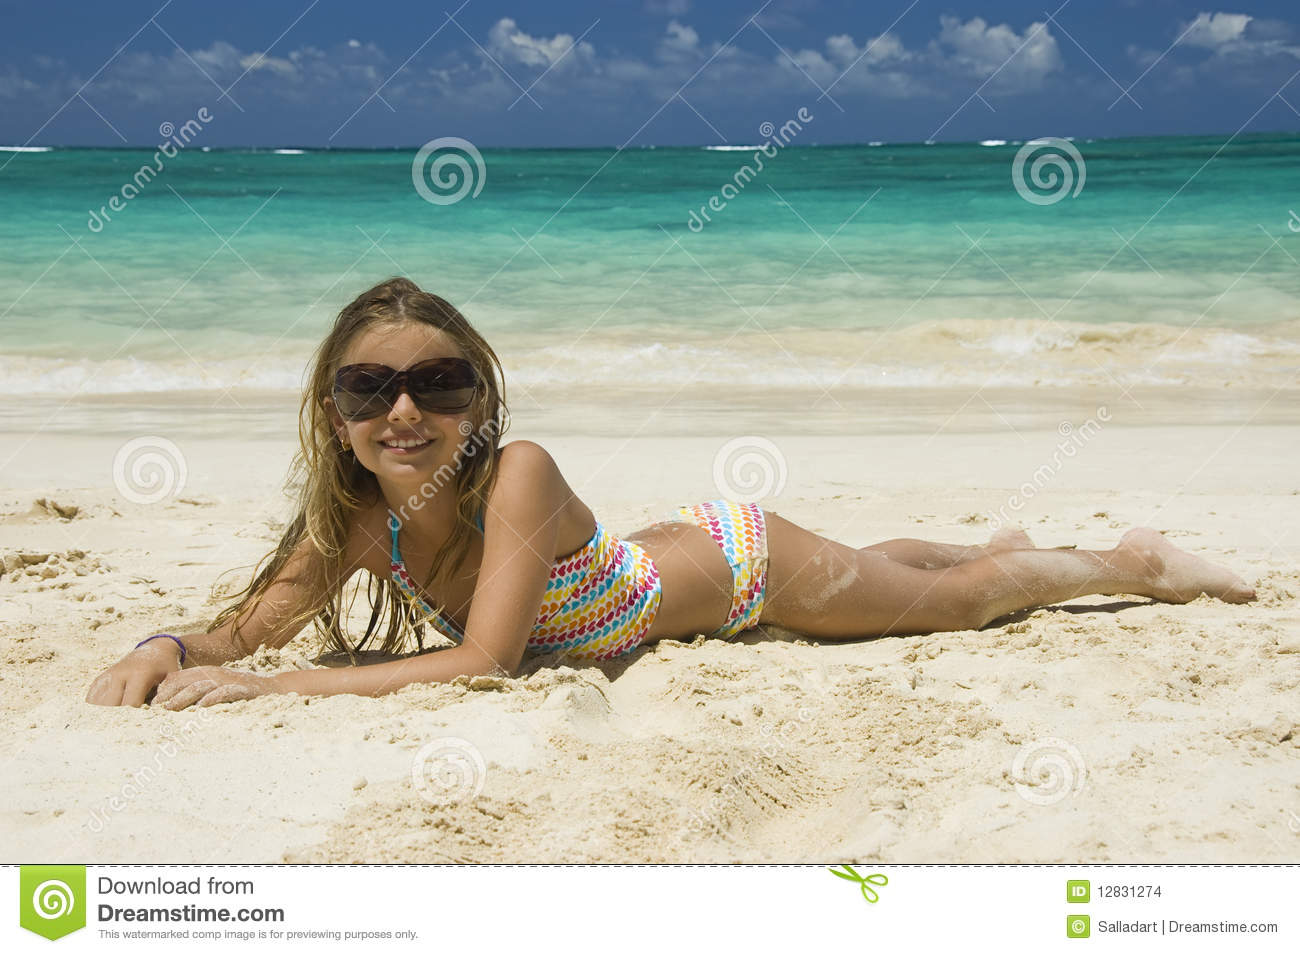 Young and tanned beach girls something is